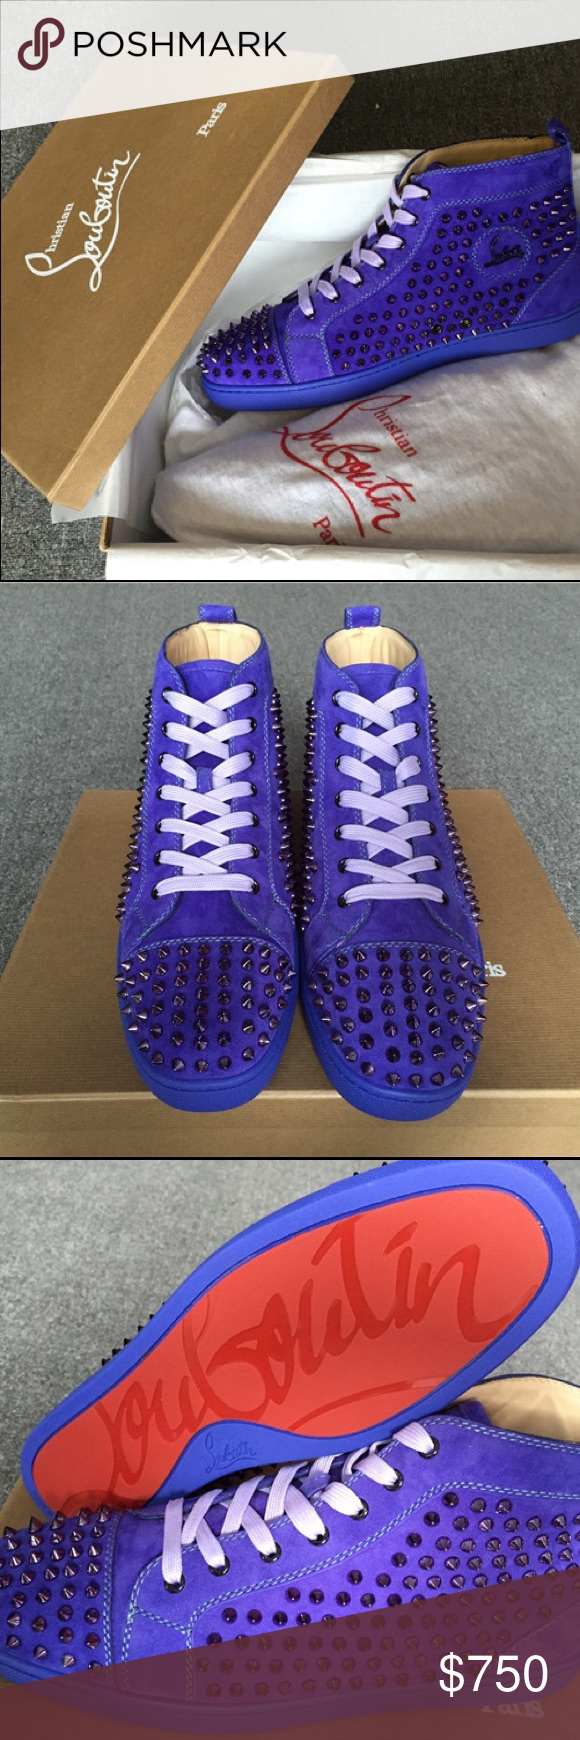 89f5a33e340 Christian Louboutin Louis Spike flat Pervenche Met BRAND NEW WITH ...